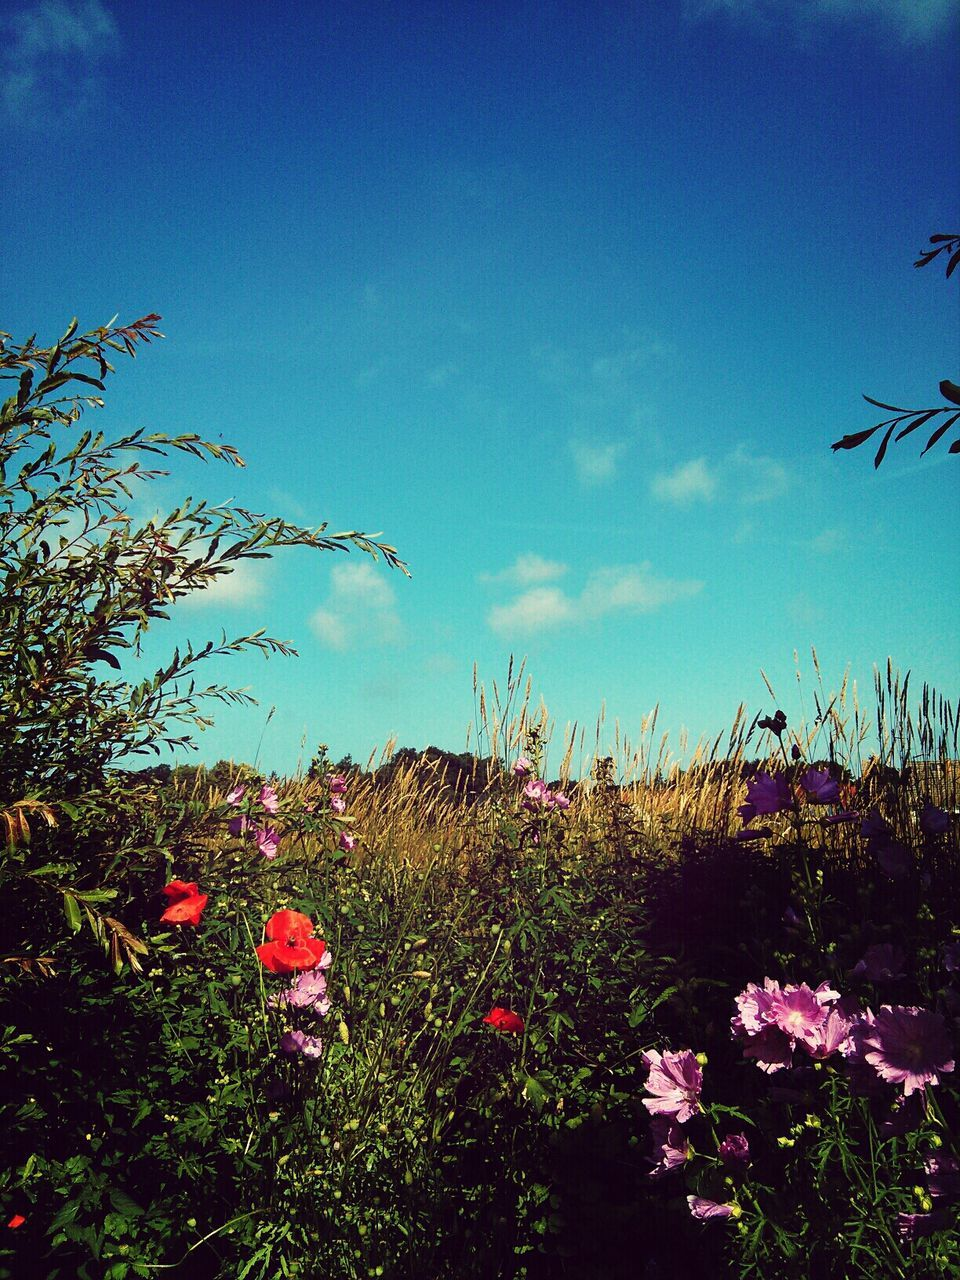 nature, growth, flower, sky, plant, no people, beauty in nature, outdoors, grass, red, day, flying